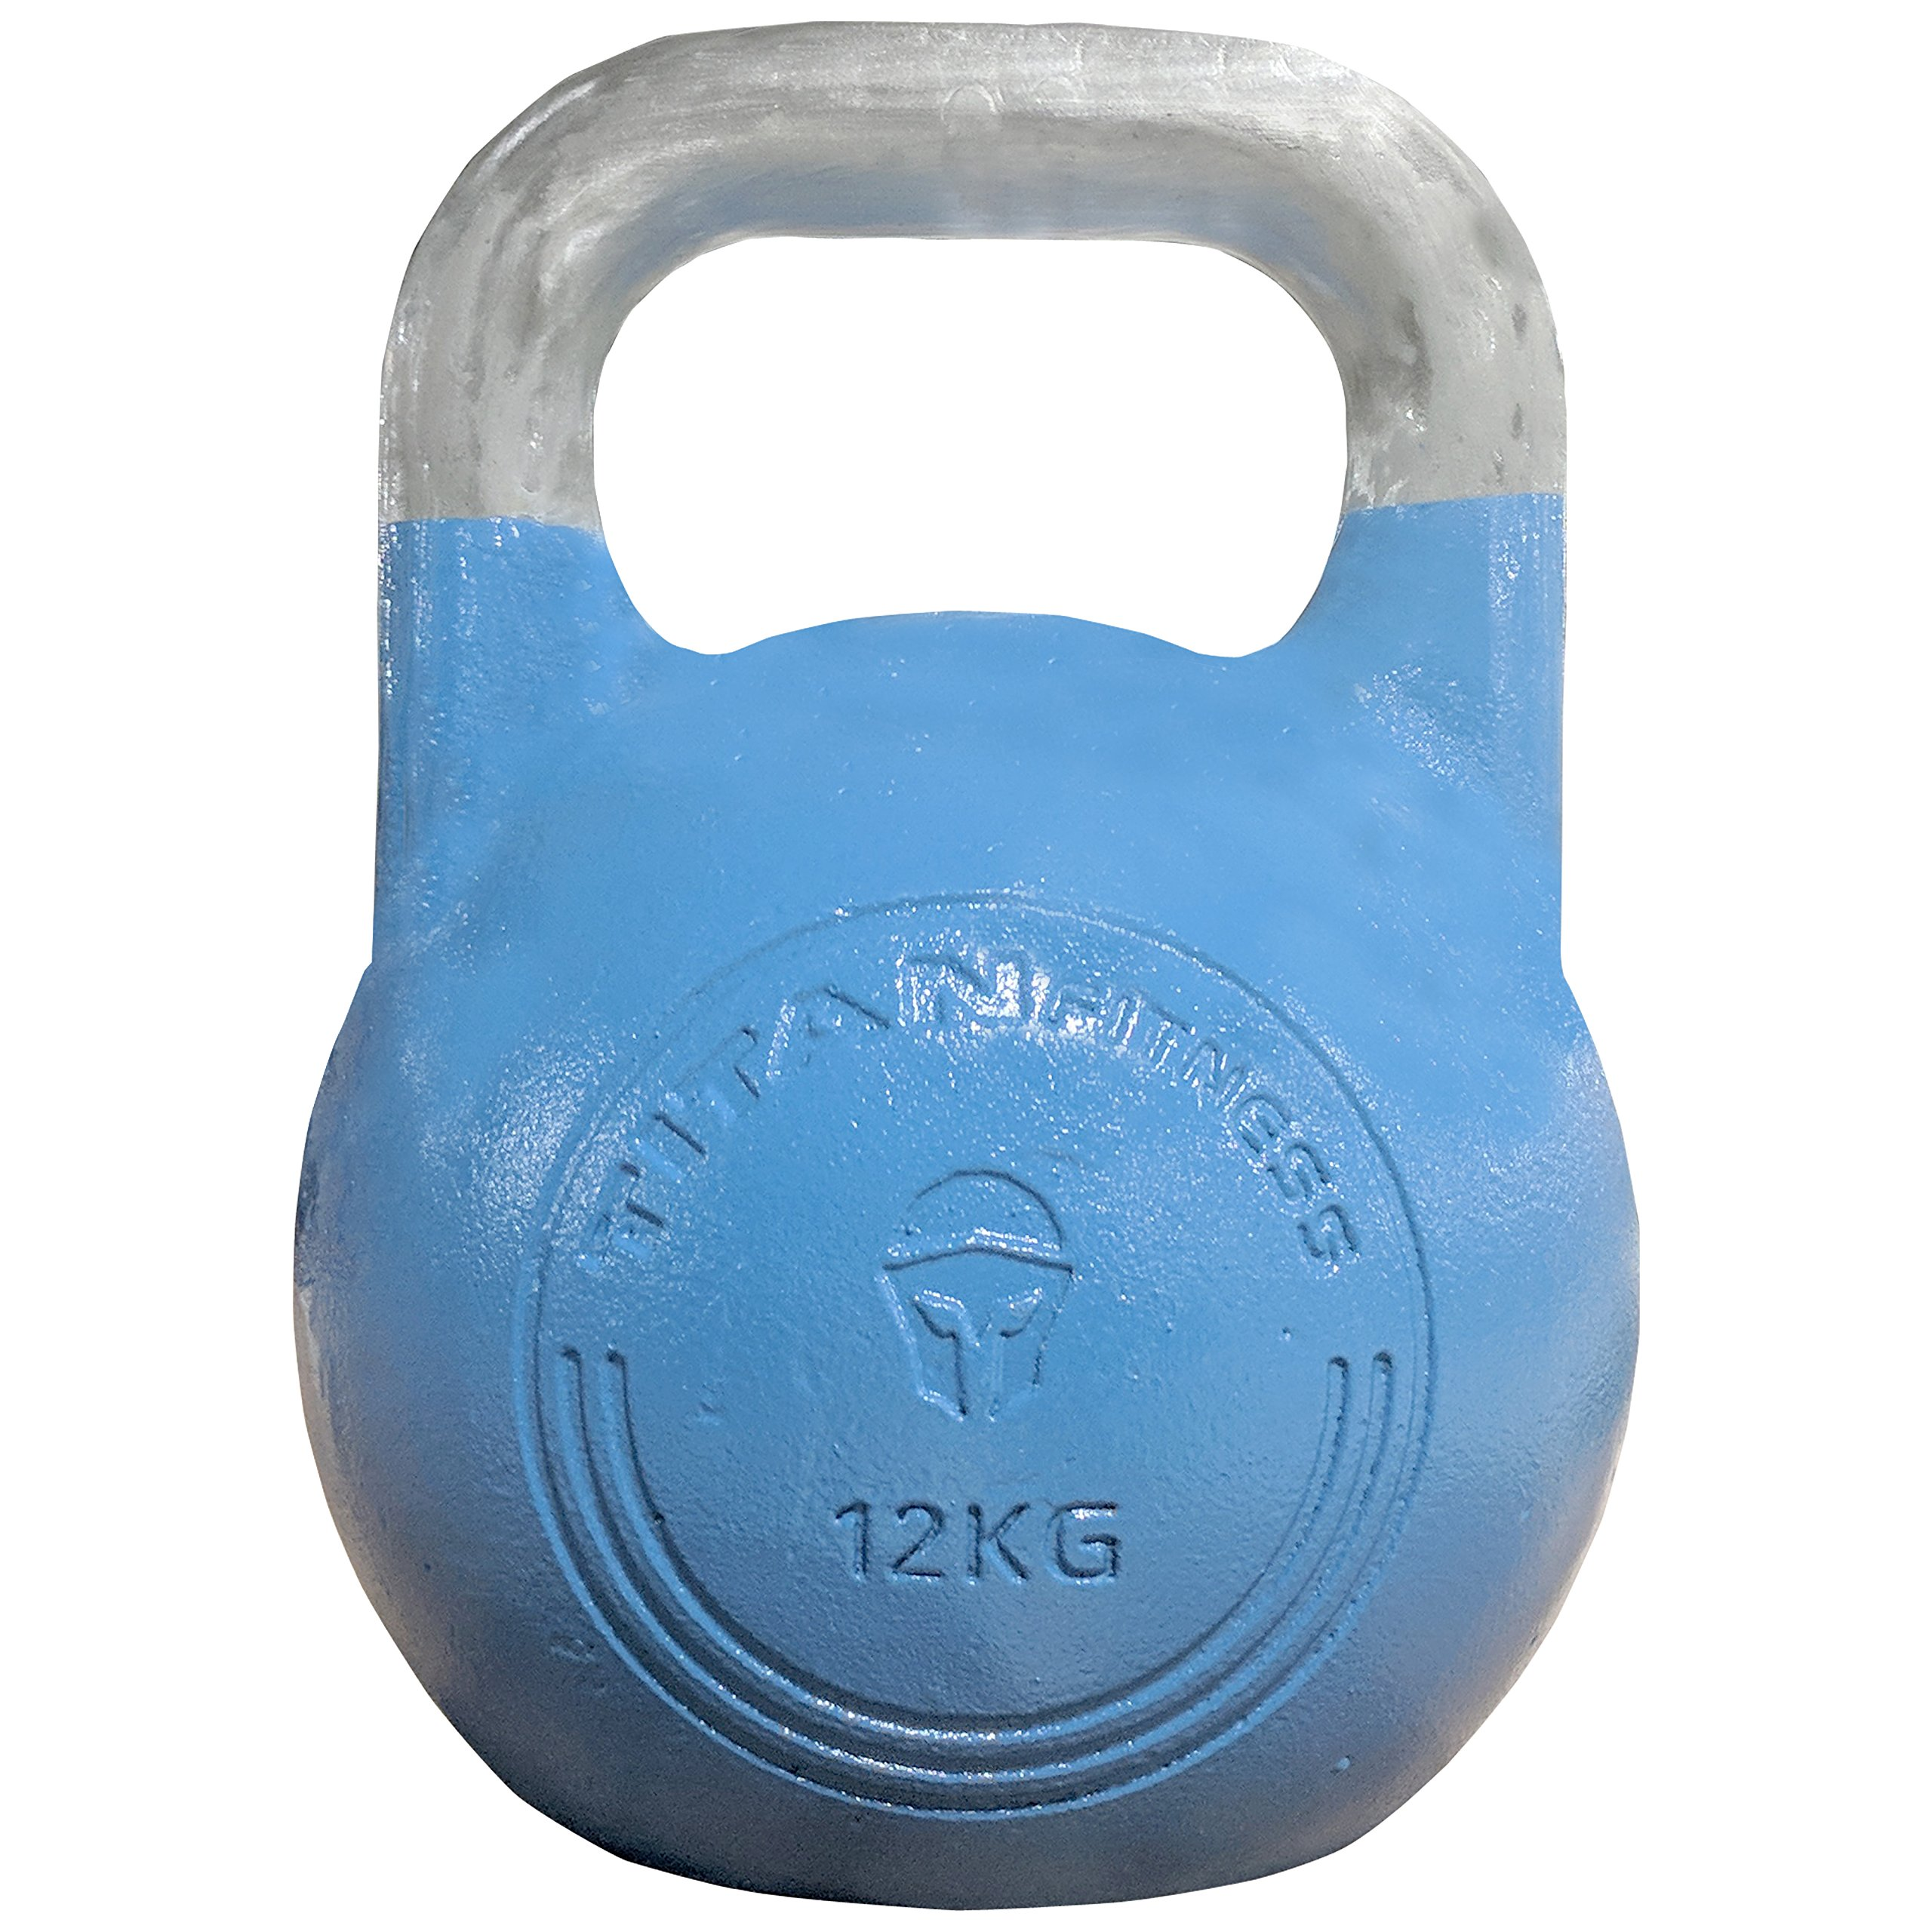 Titan Competition Style Kettlebell - 12 KG